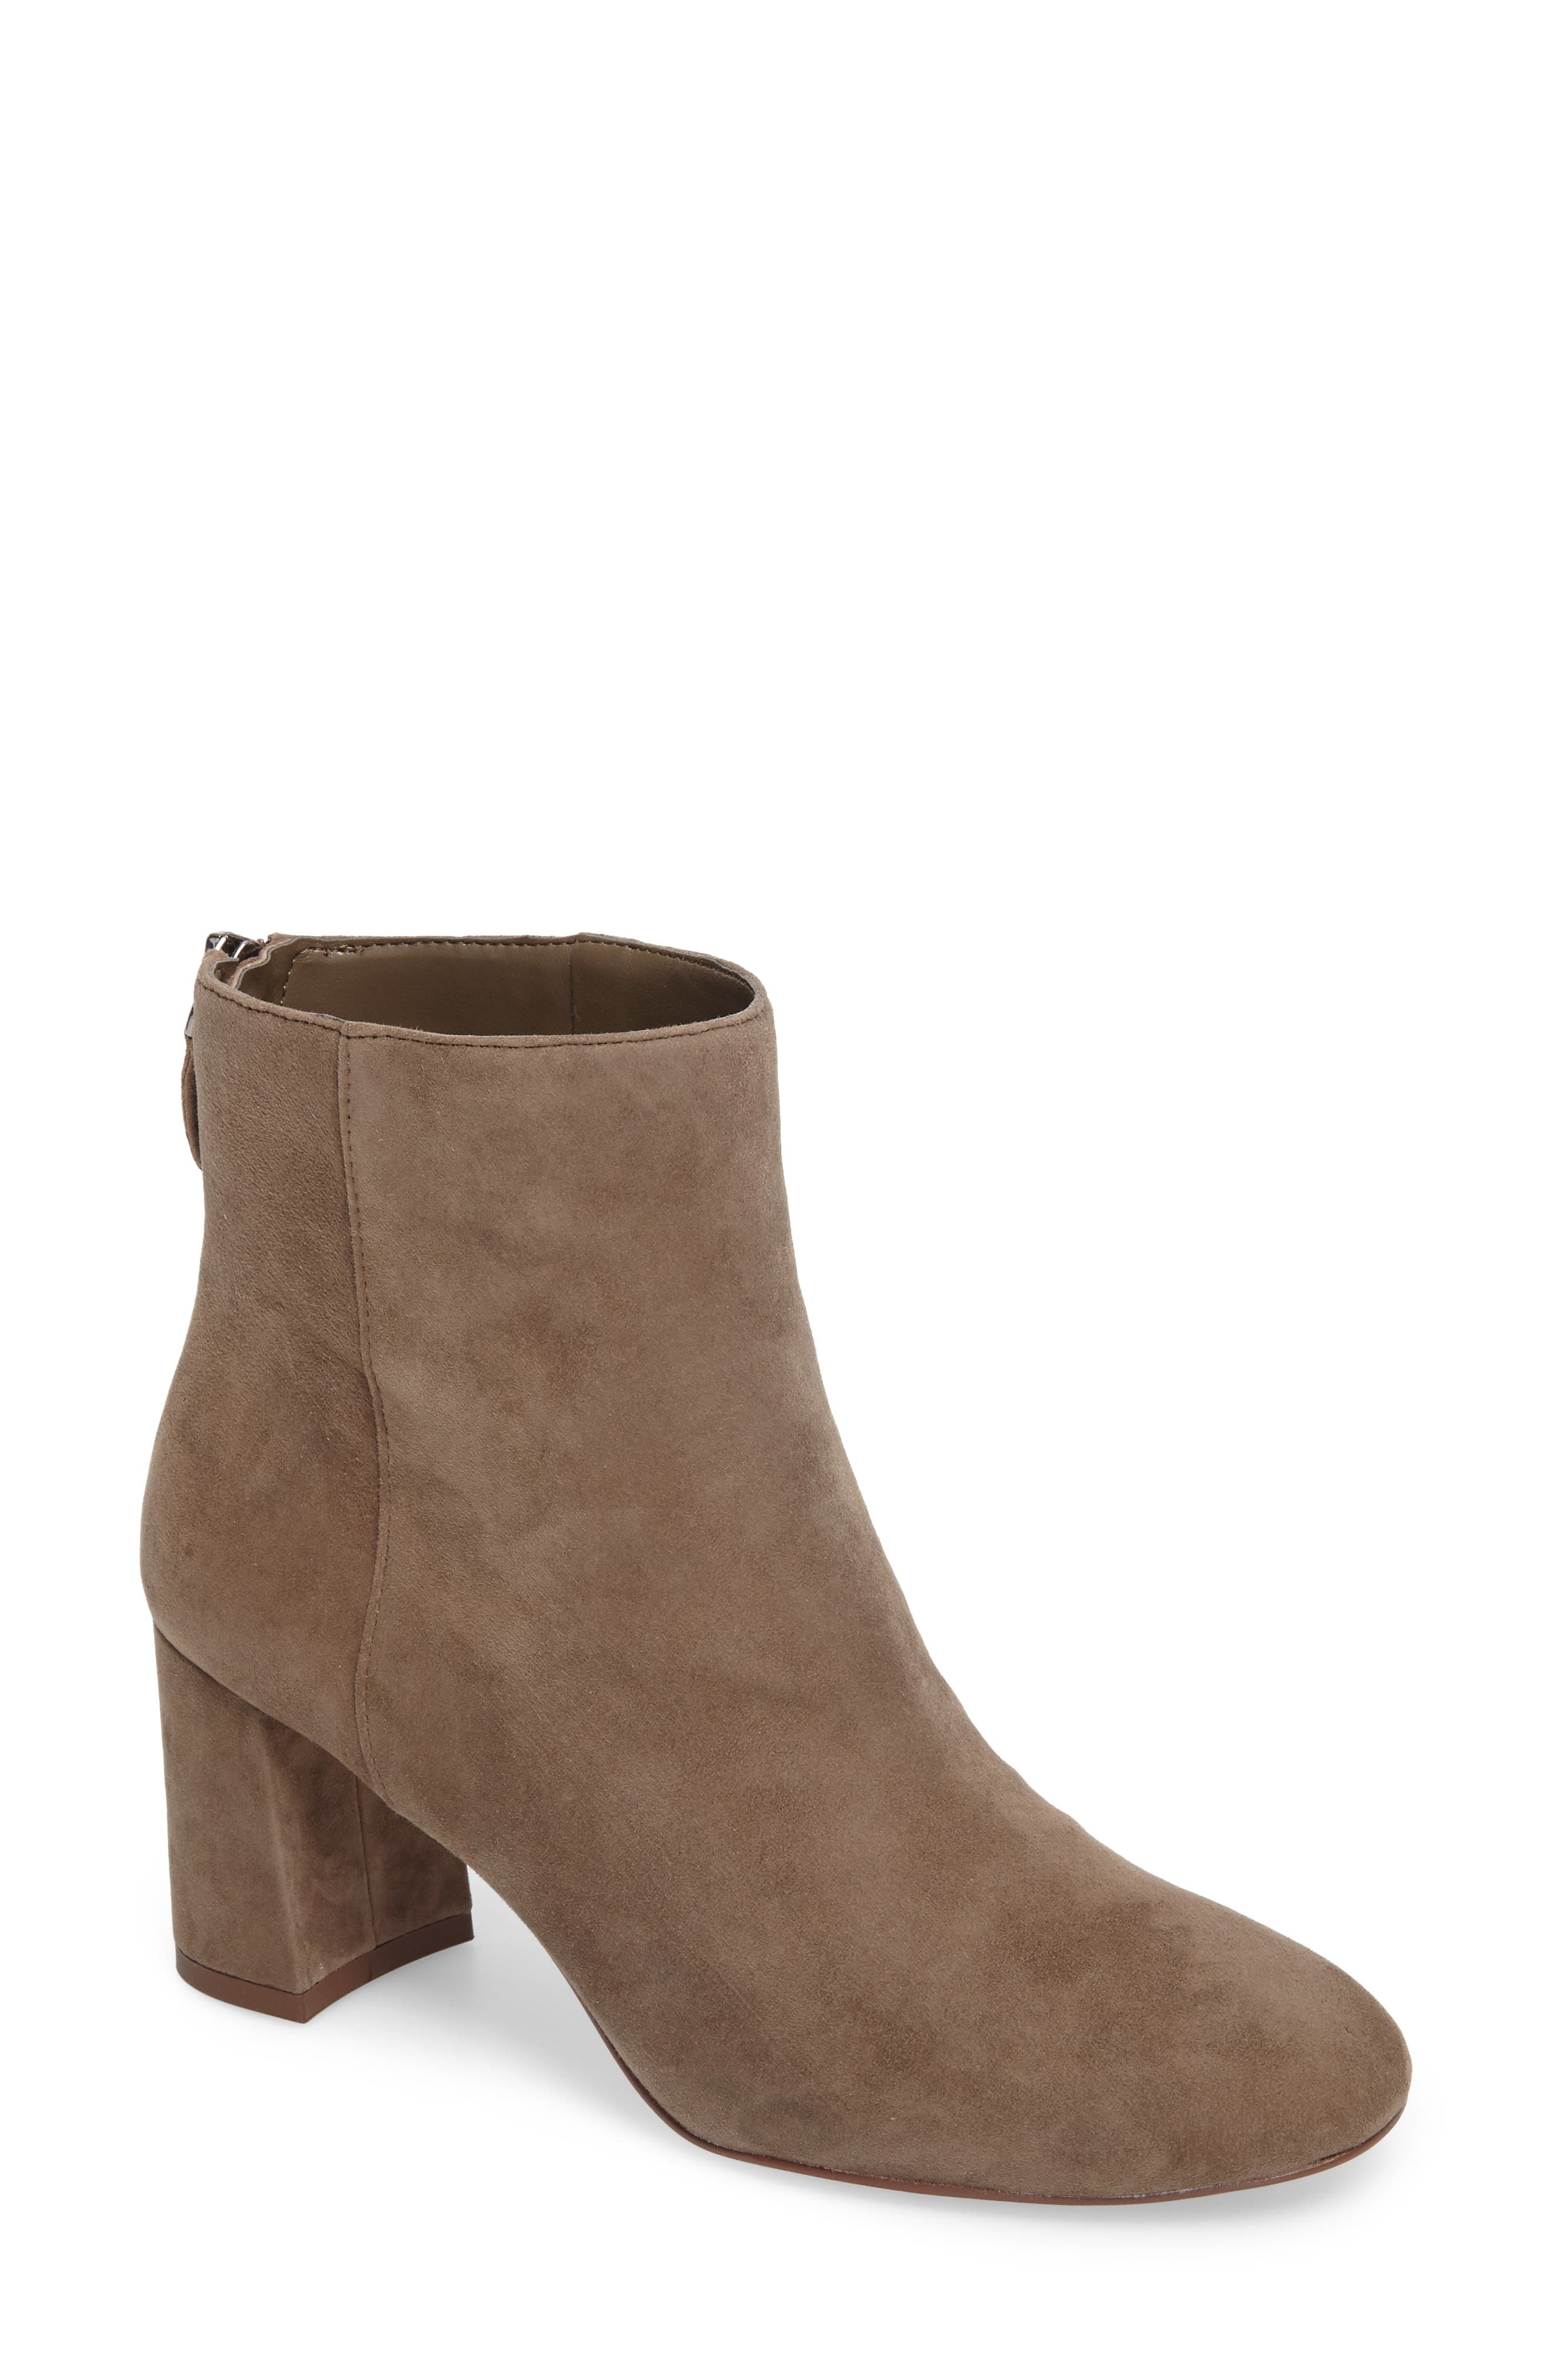 Main Image - Sole Society Garnette Bootie (Women)